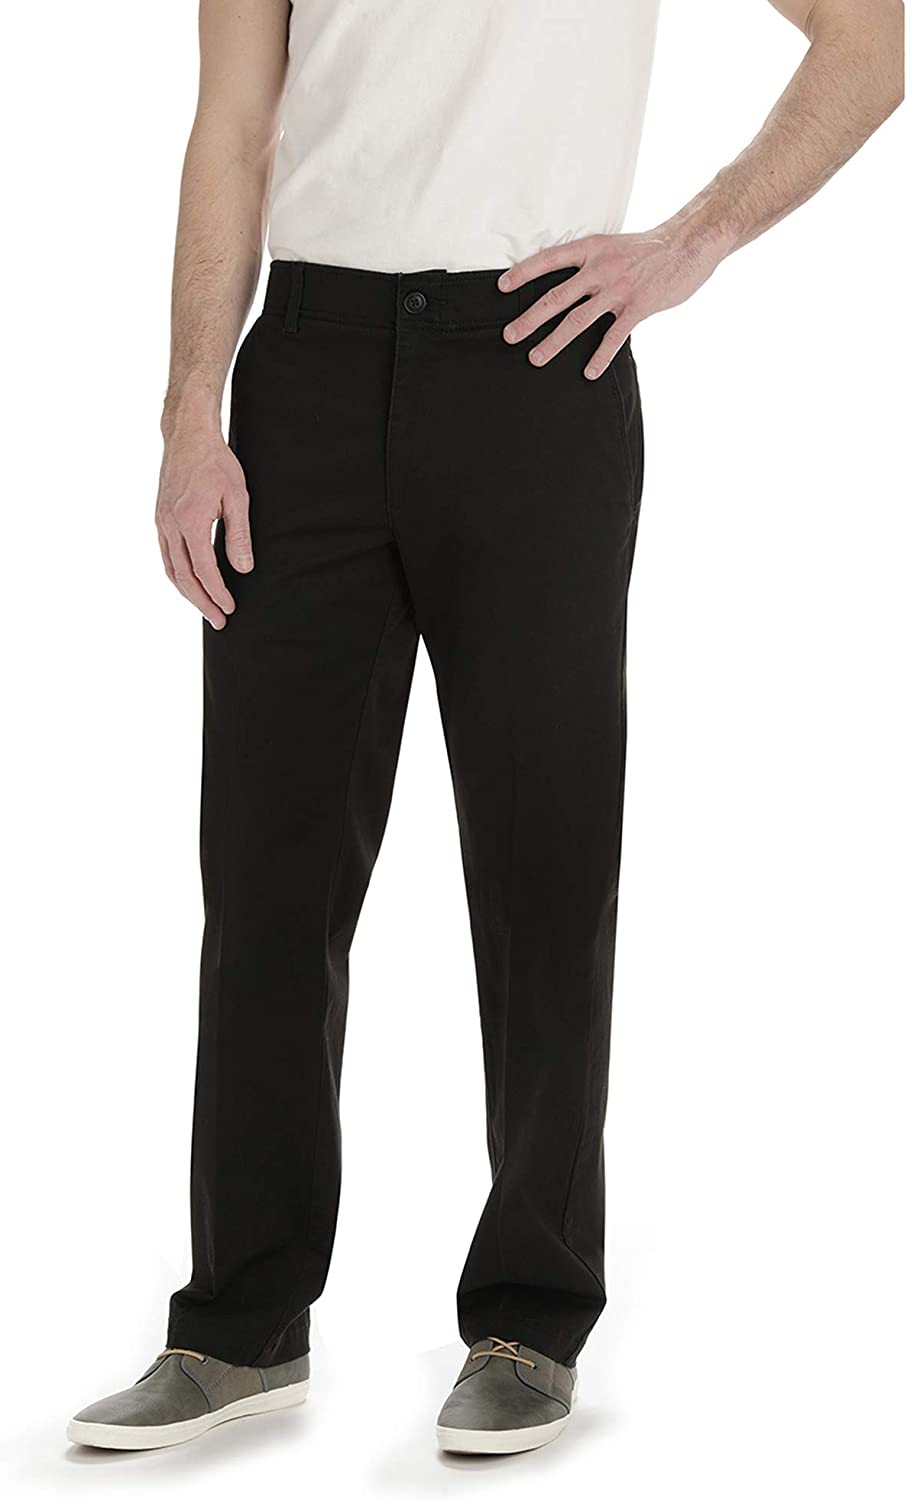 LEE Men's Big Max 87% OFF Tall Performance Challenge the lowest price of Japan Series Pant Extreme Comfort